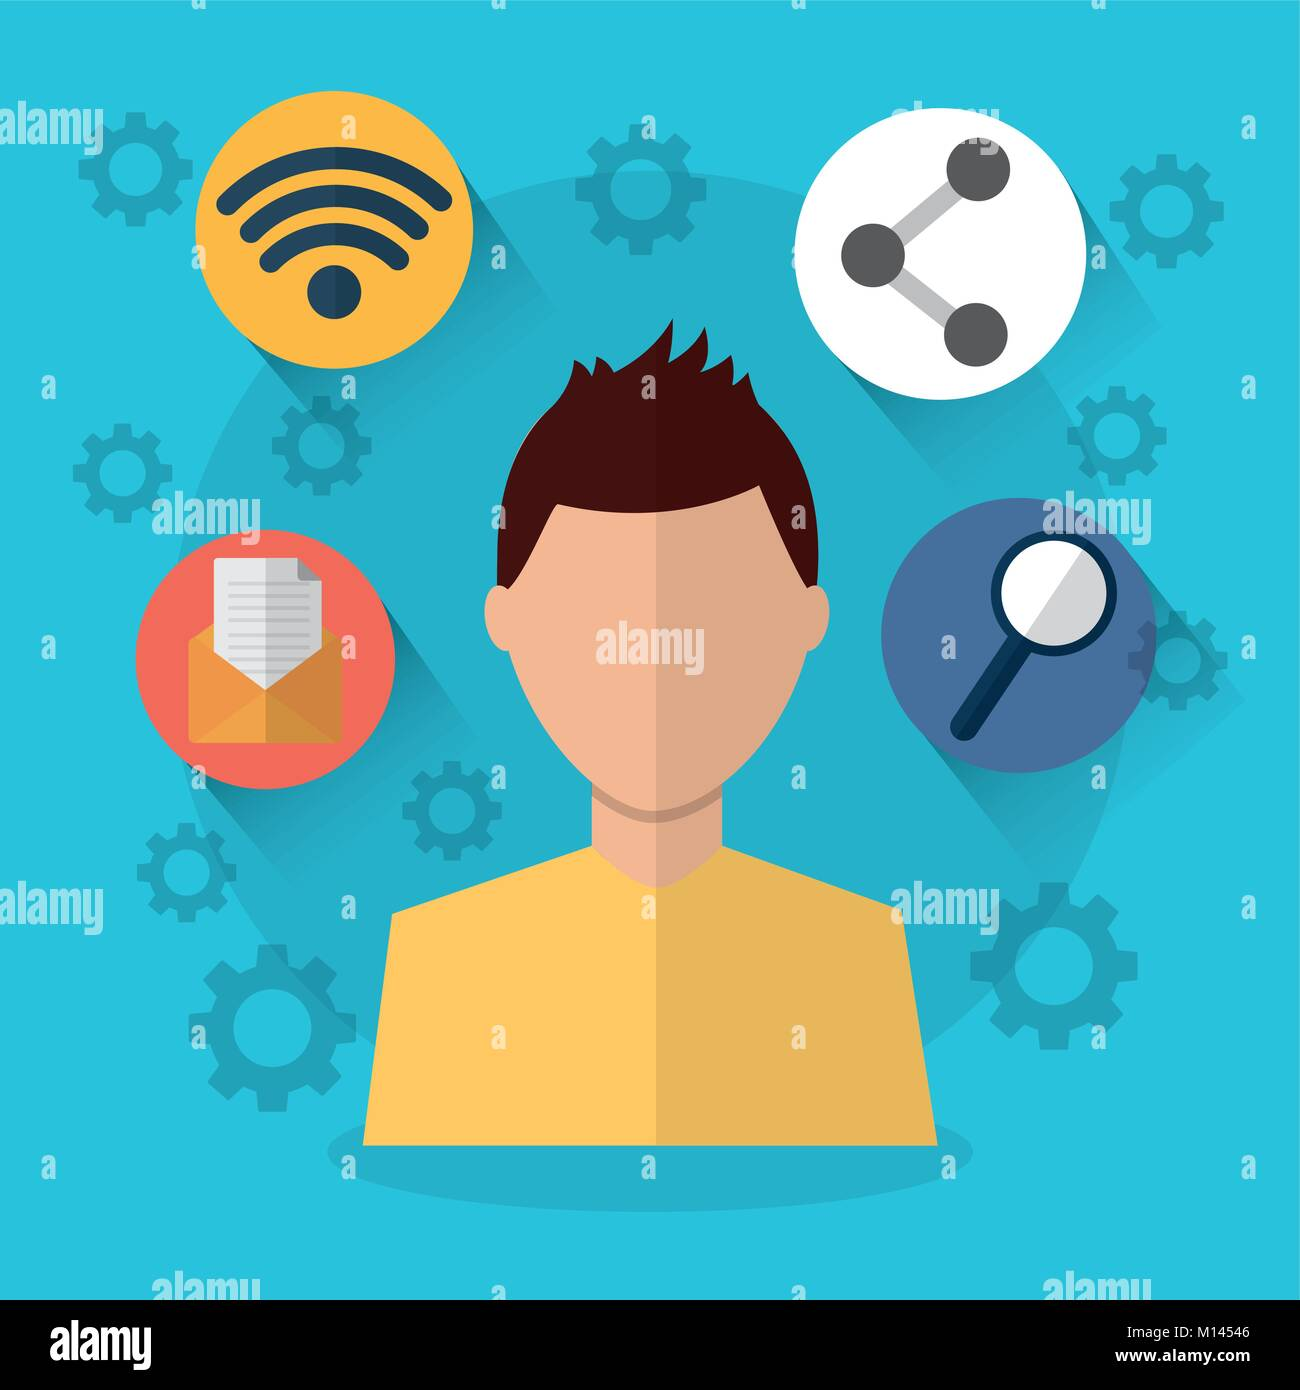 man internet wifi sharing email search icons - Stock Image